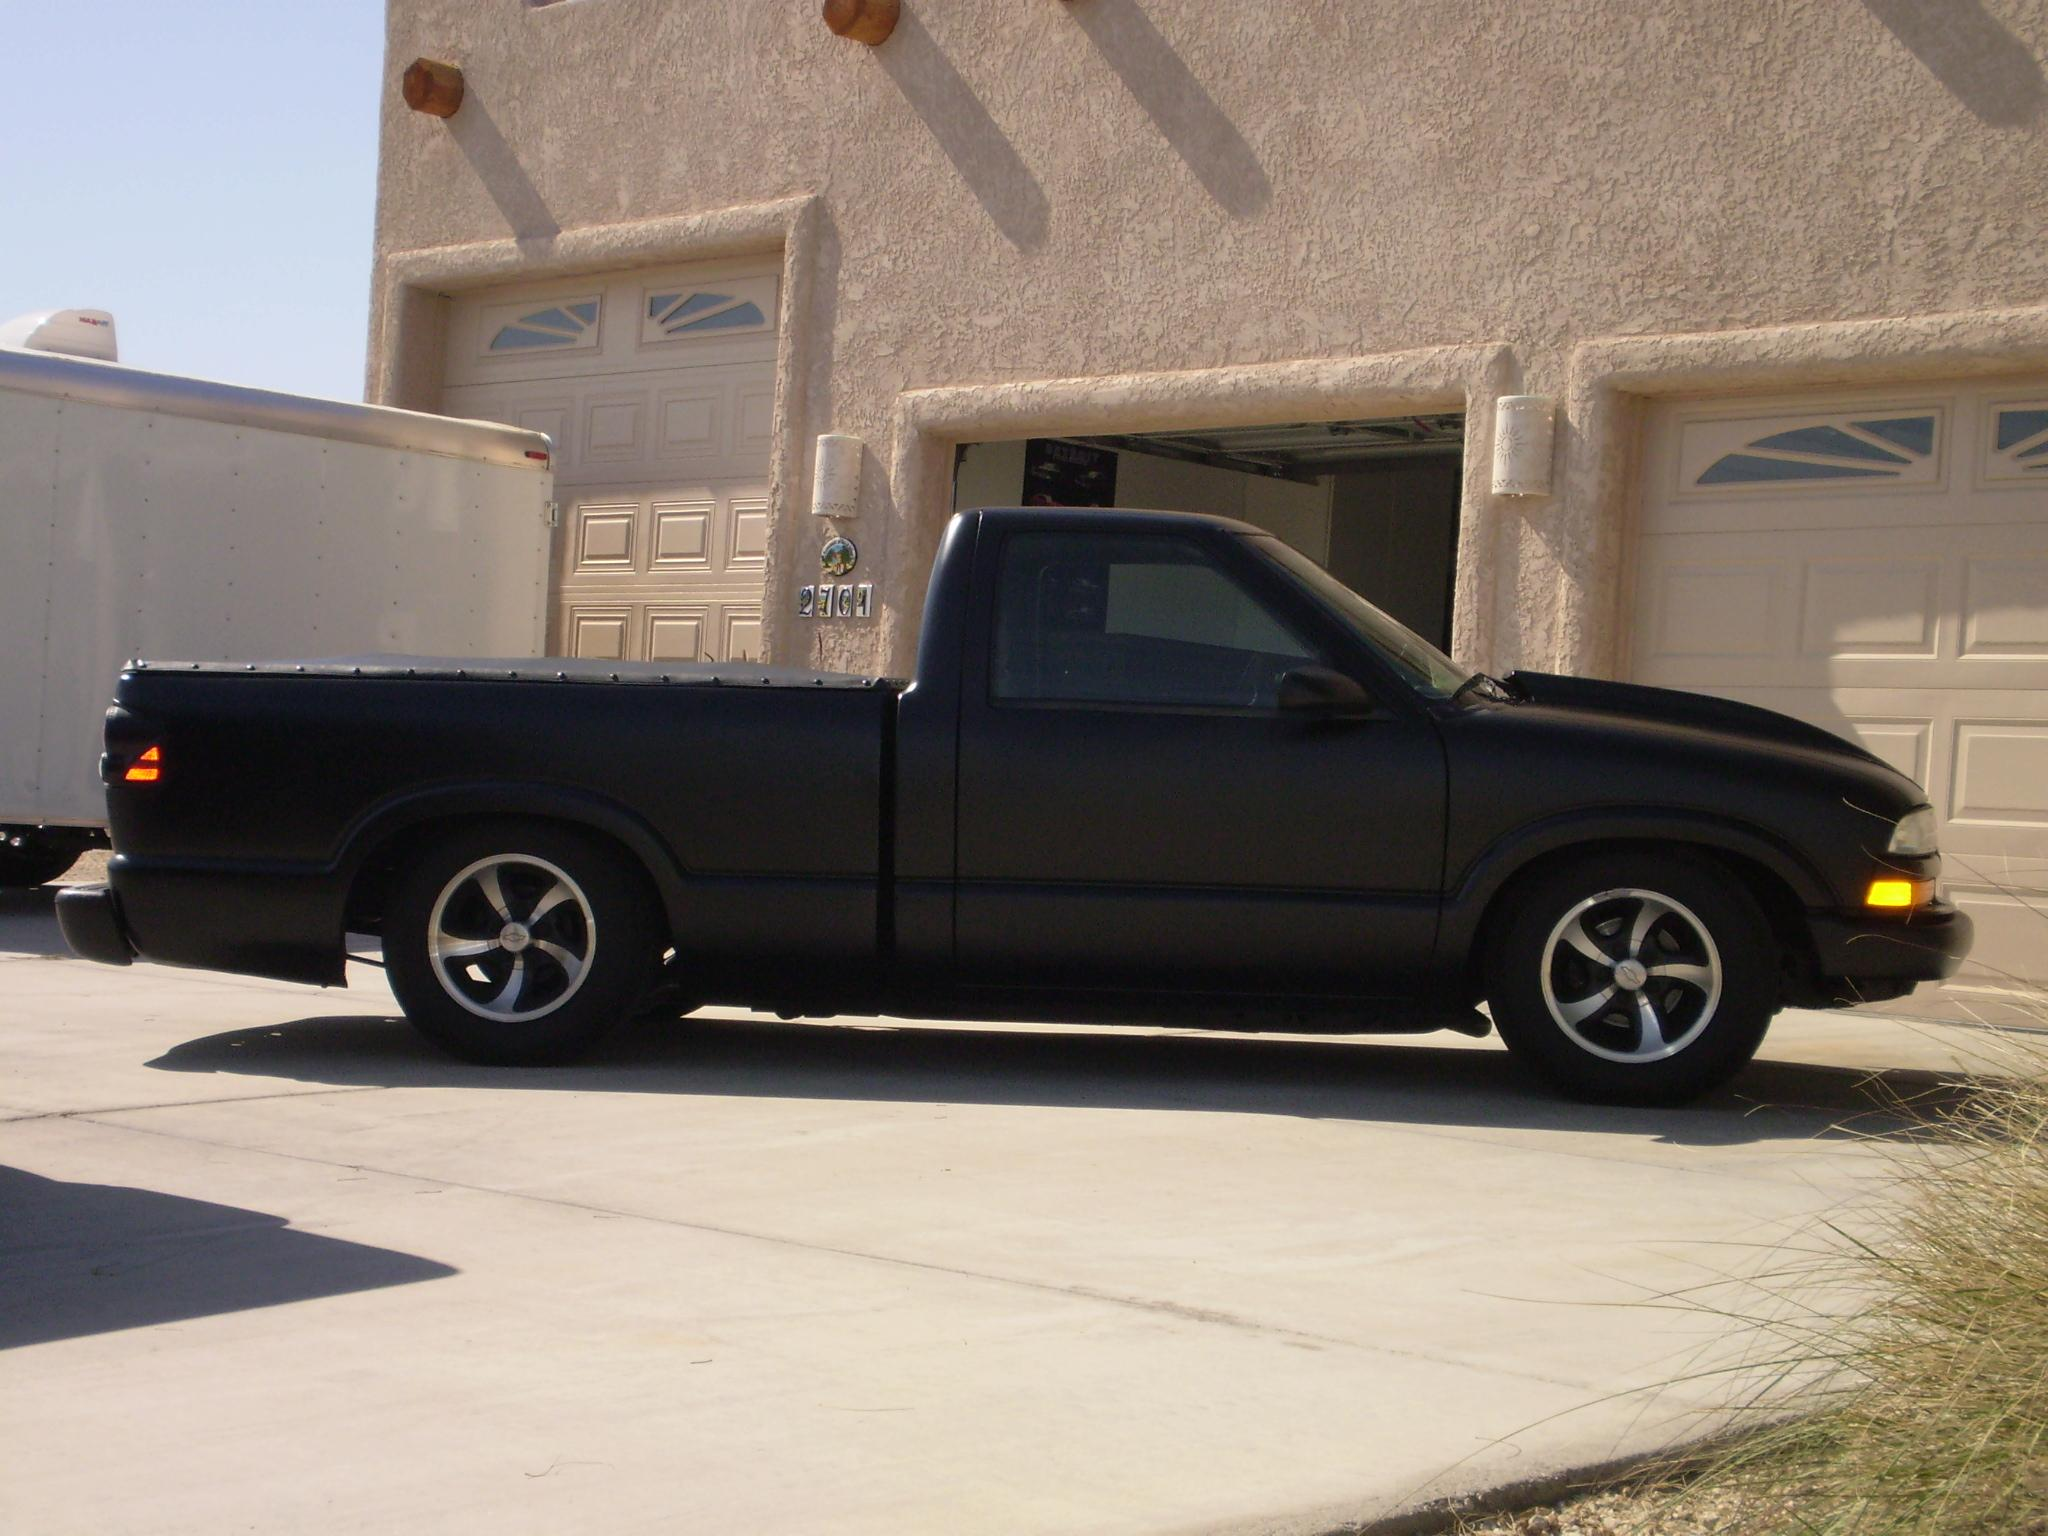 hava low v8 2000 chevrolet s10 regular cab specs photos modification info at cardomain. Black Bedroom Furniture Sets. Home Design Ideas